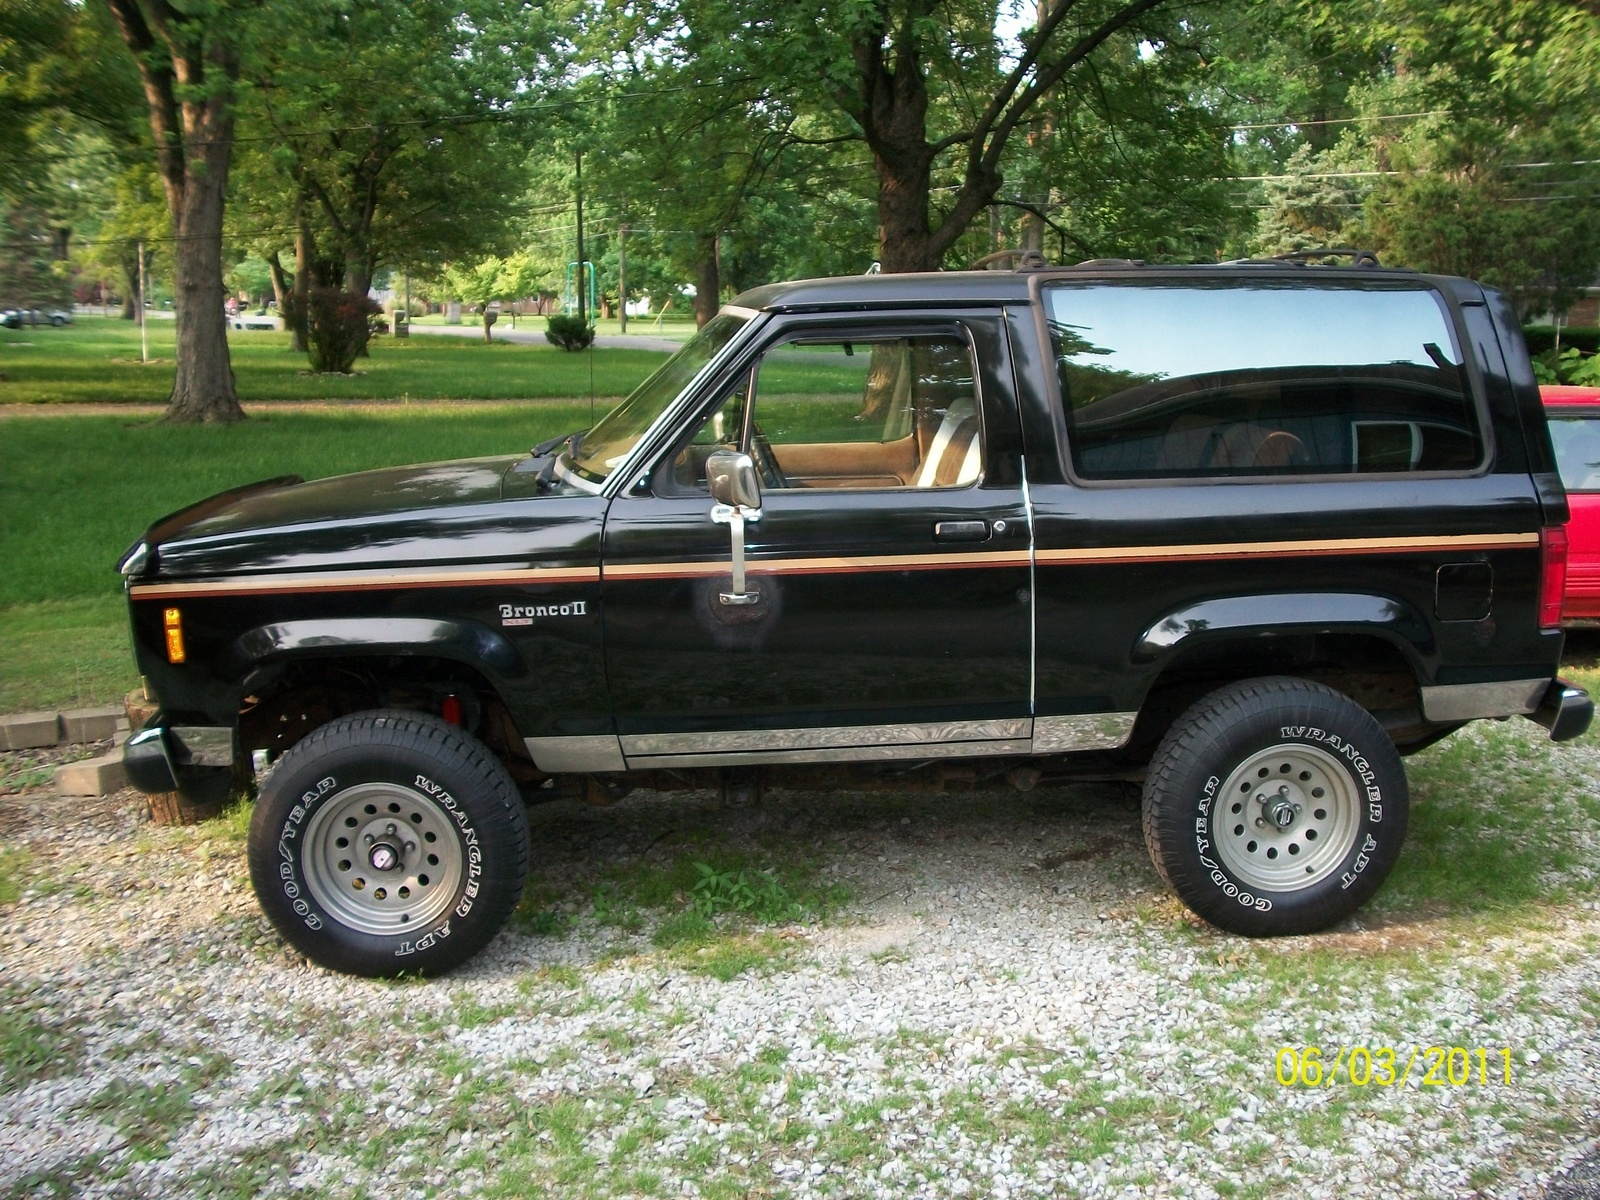 hight resolution of i have a 88 ford bronco ii xlt with vent windows non power window and im wondering how to replace the window seals i bought a brand new clip on type